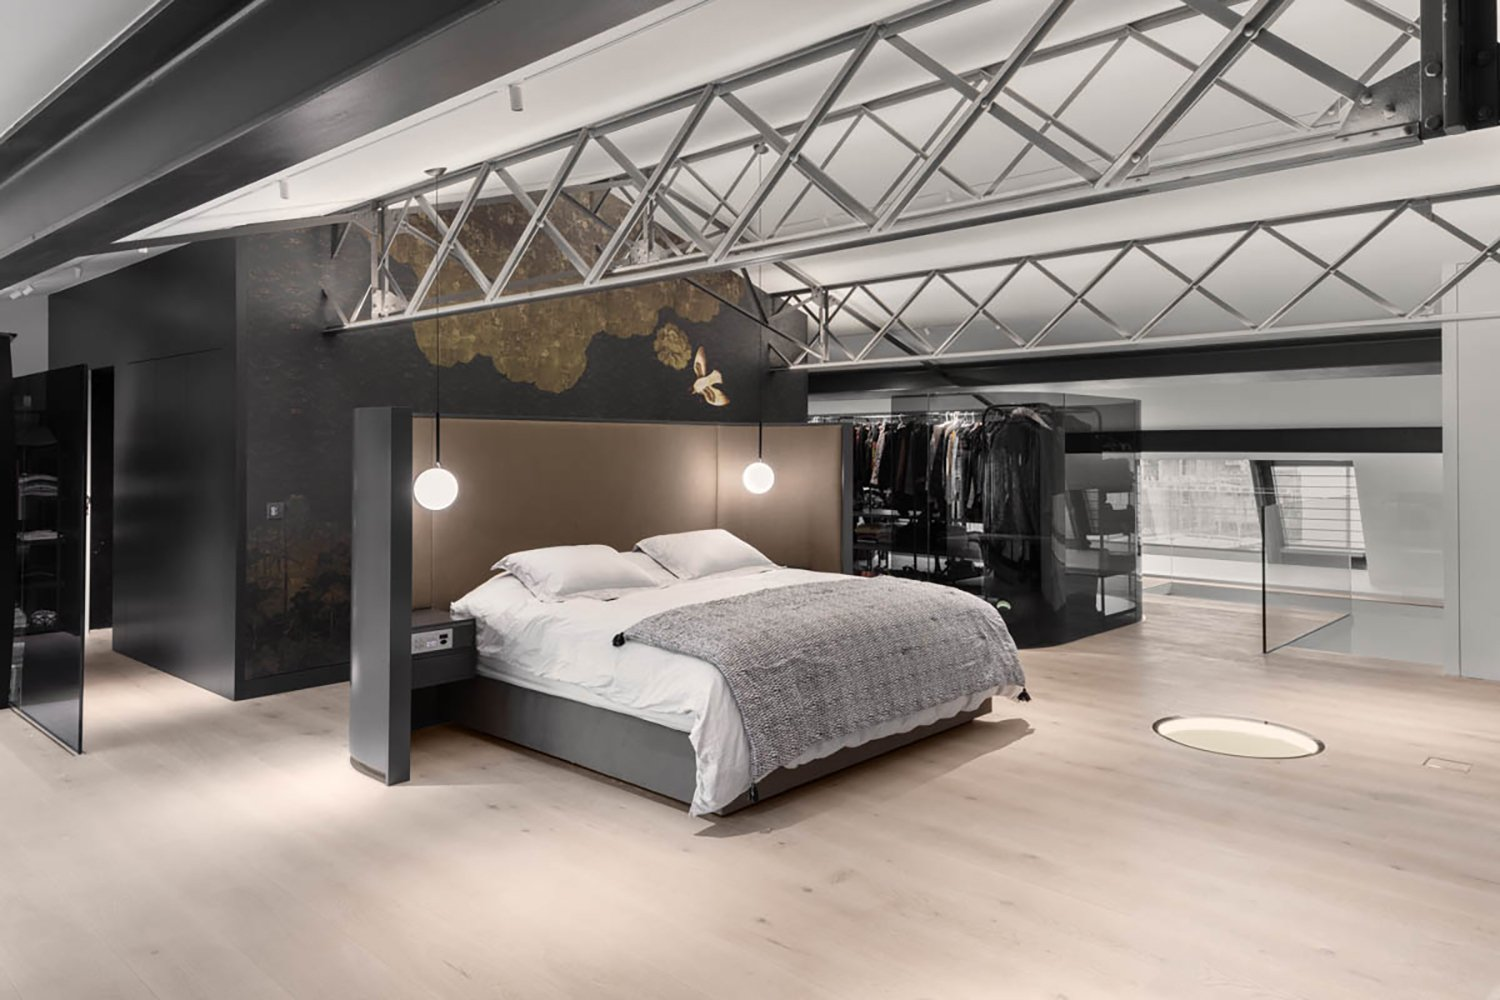 The master bedroom strategically placed on the top floor for most privacy and views. Delphine Burtin